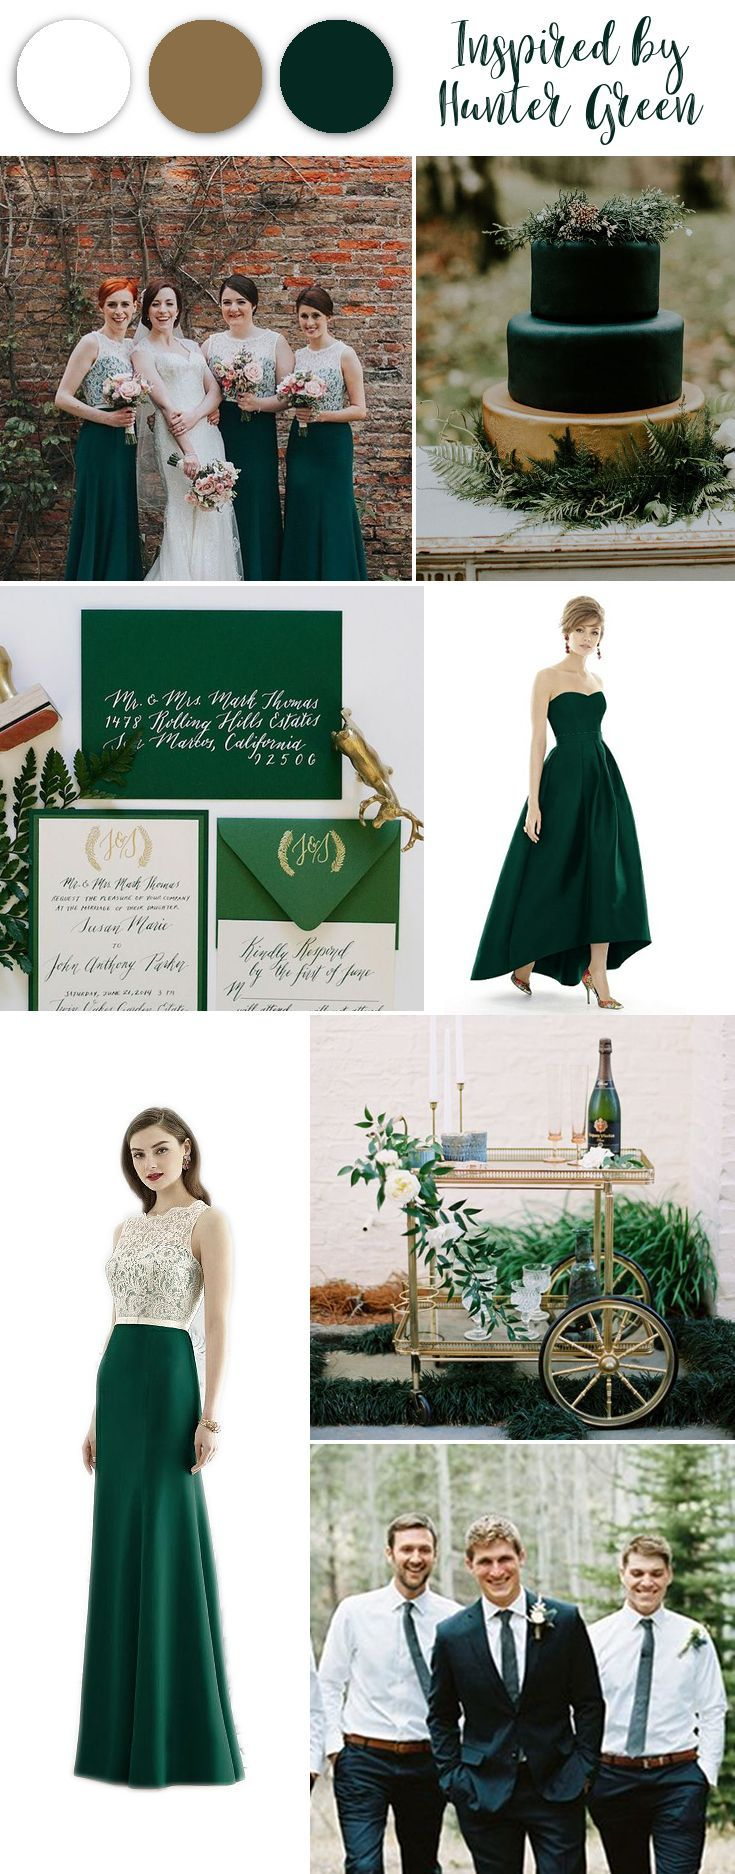 Hunter green has got us inspired for a late fall to winter wedding. The stunning jewel toned green along side of white and gold perhaps? Rich and earthy at the same time, hunter green bridal party inspiration. #huntergreenwedding #greenweddinginspiration